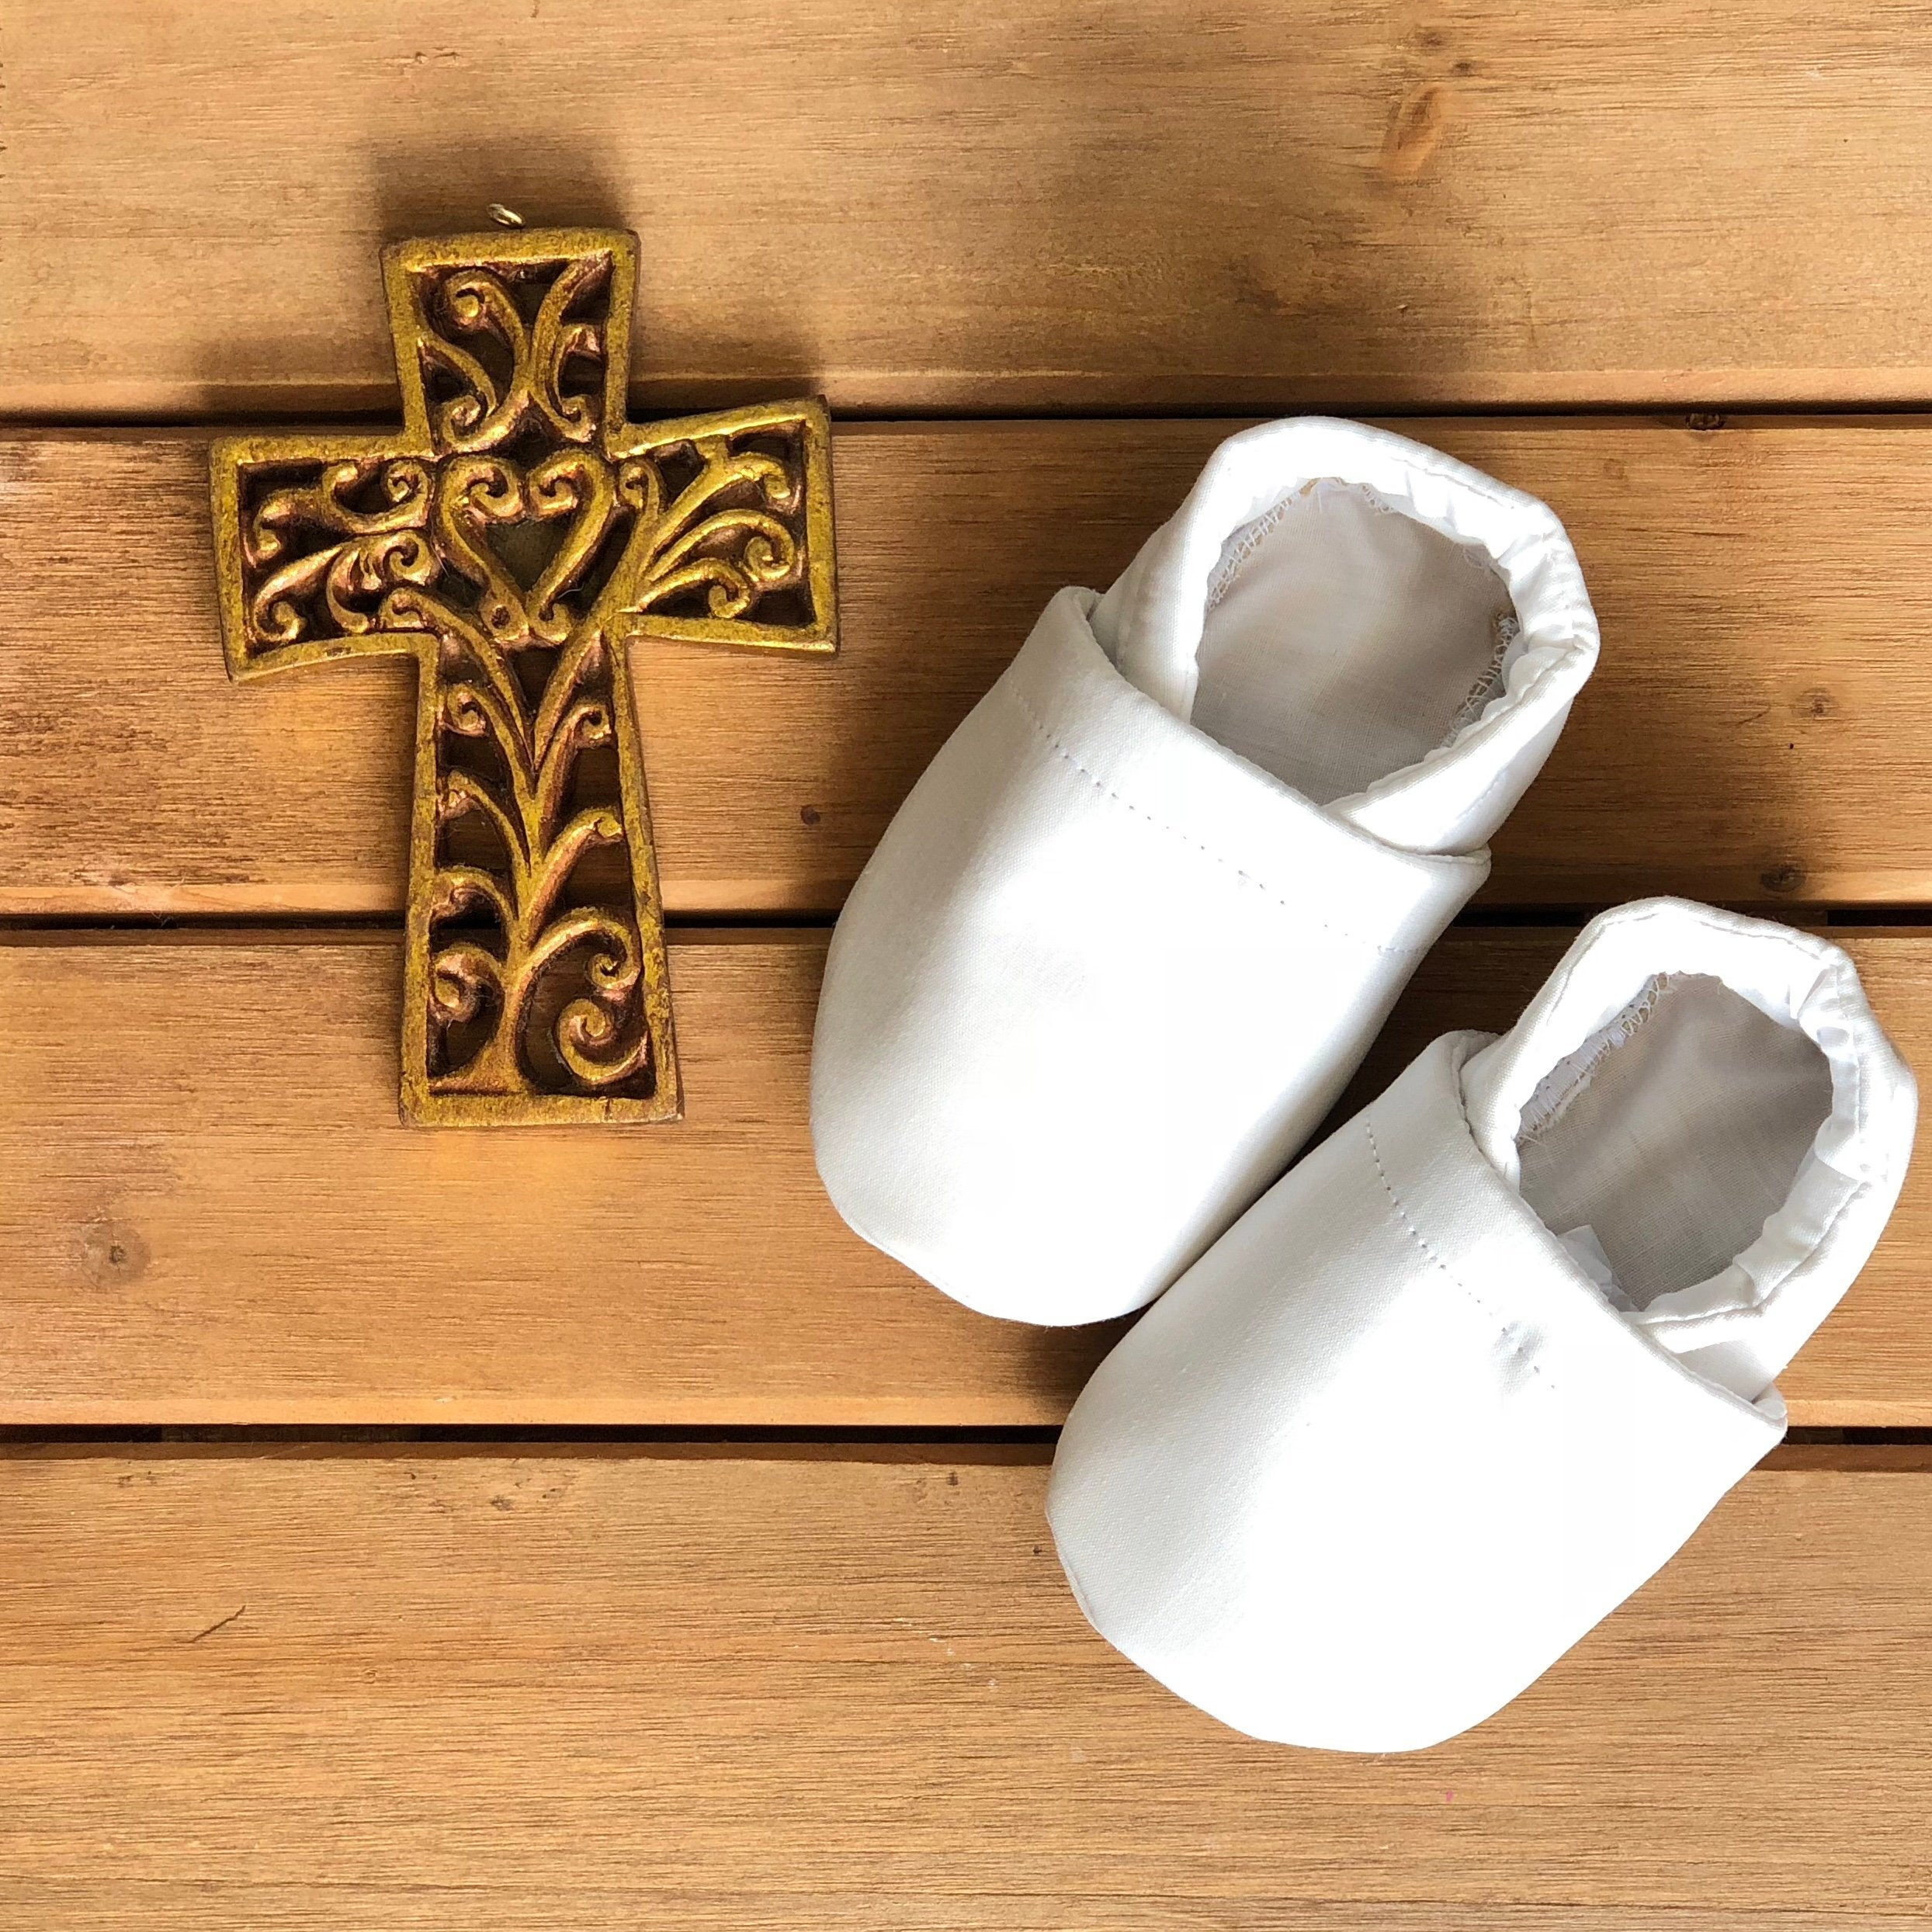 Newborn Boys Baptism Slip-on Shoes Size 0 your choice 0-3 months or Size 1